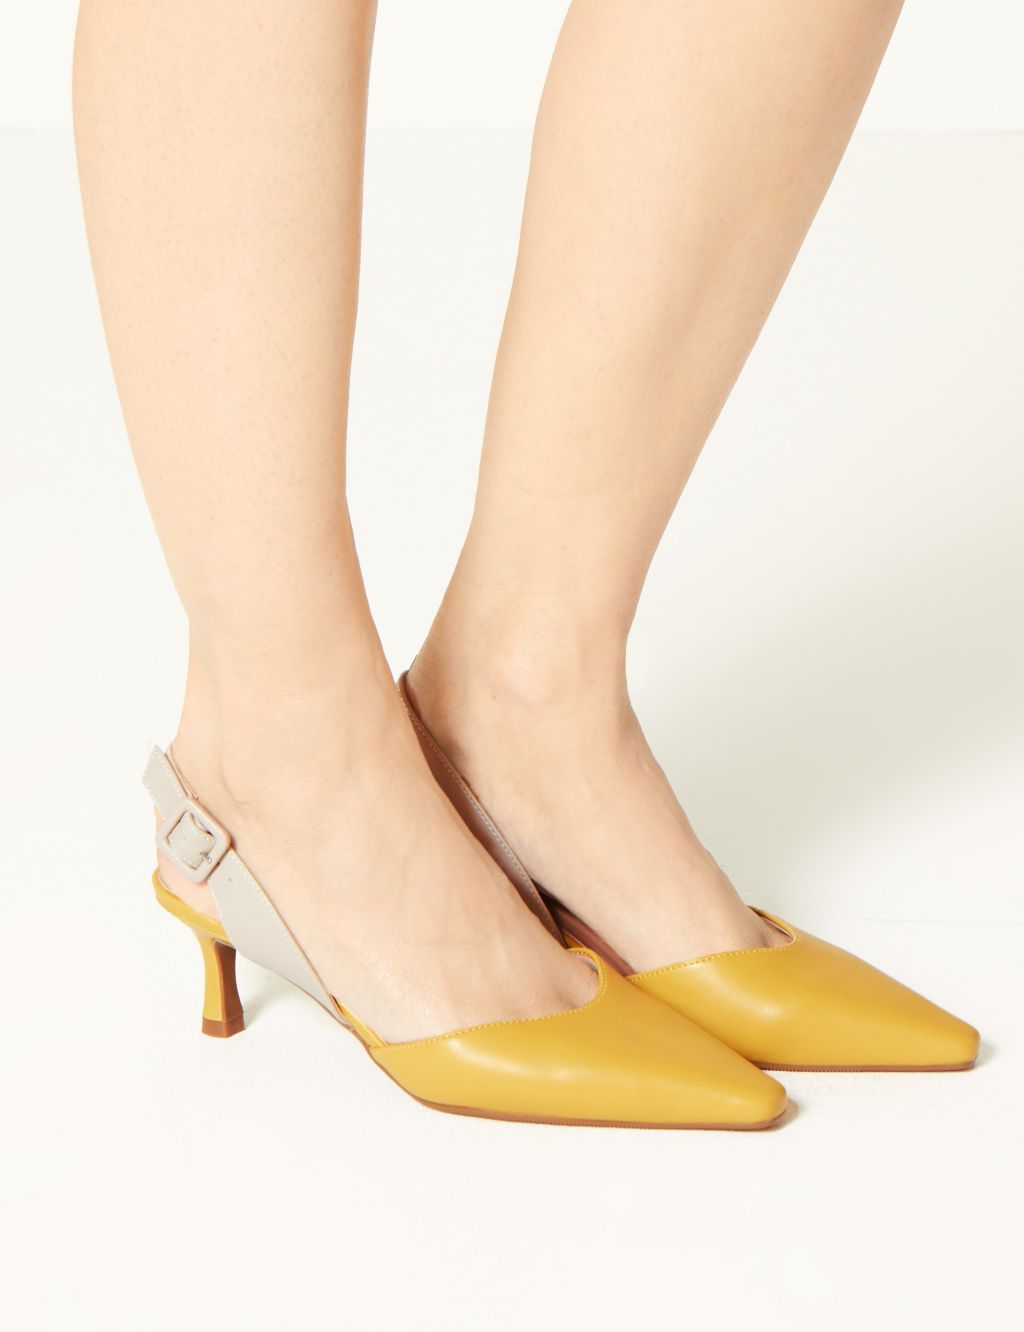 Kitten Heel Slingback Shoes M S Collection M S Kitten Heel Slingback Shoes Heels Slingback Shoes